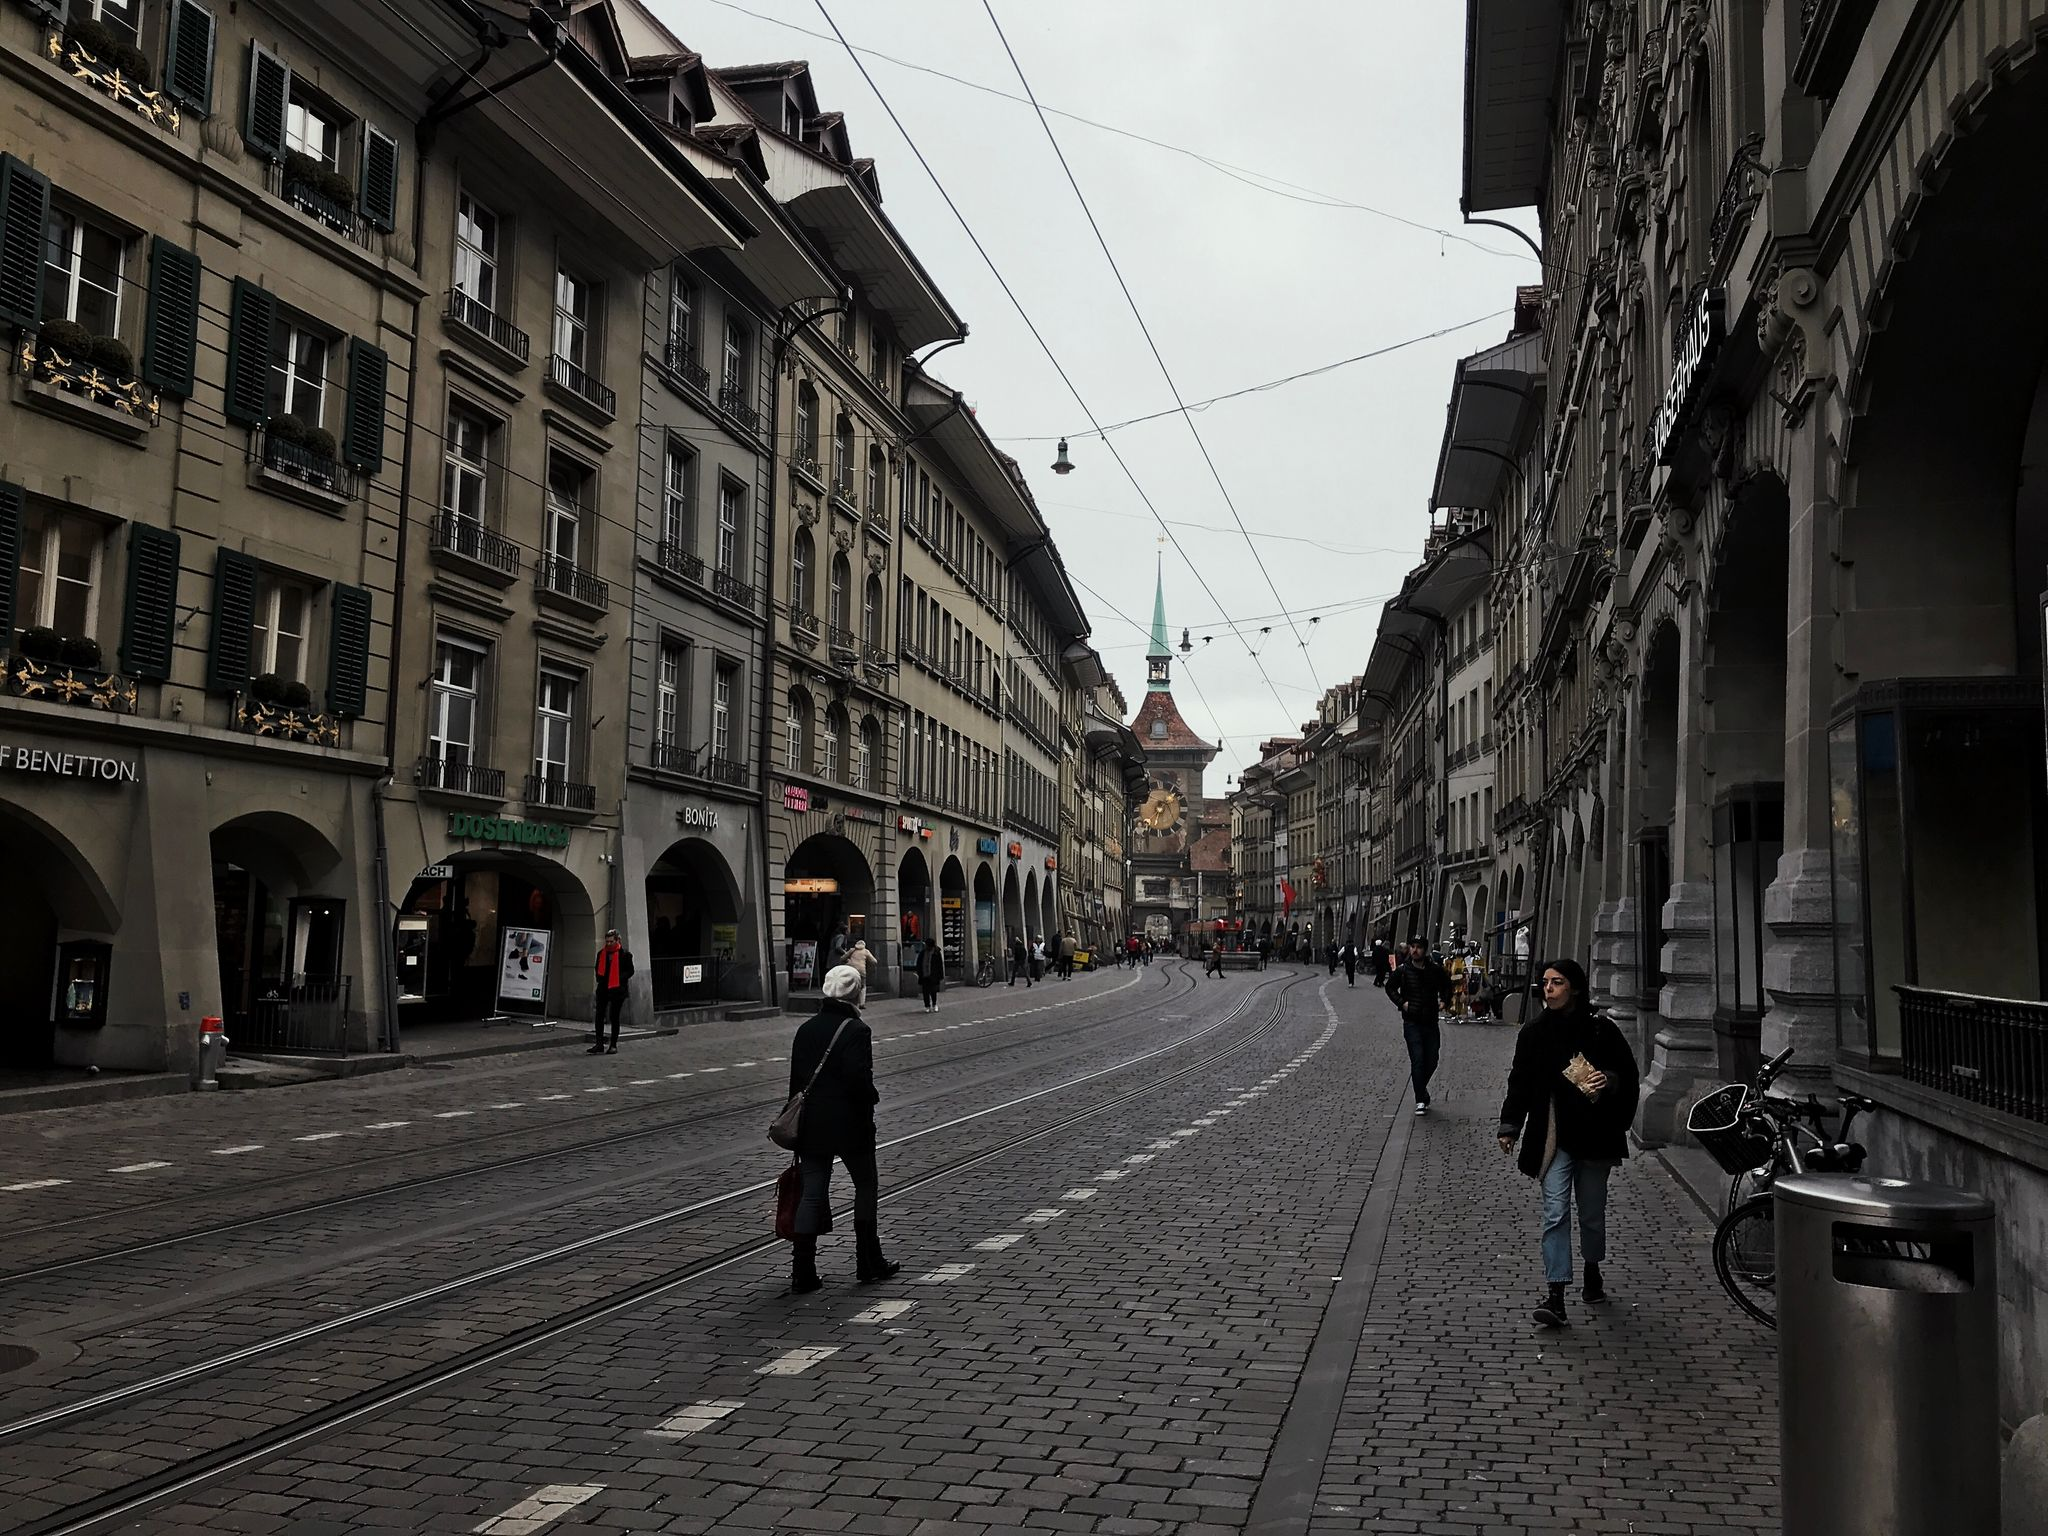 A photo looking down a cobblestone street in Bern.